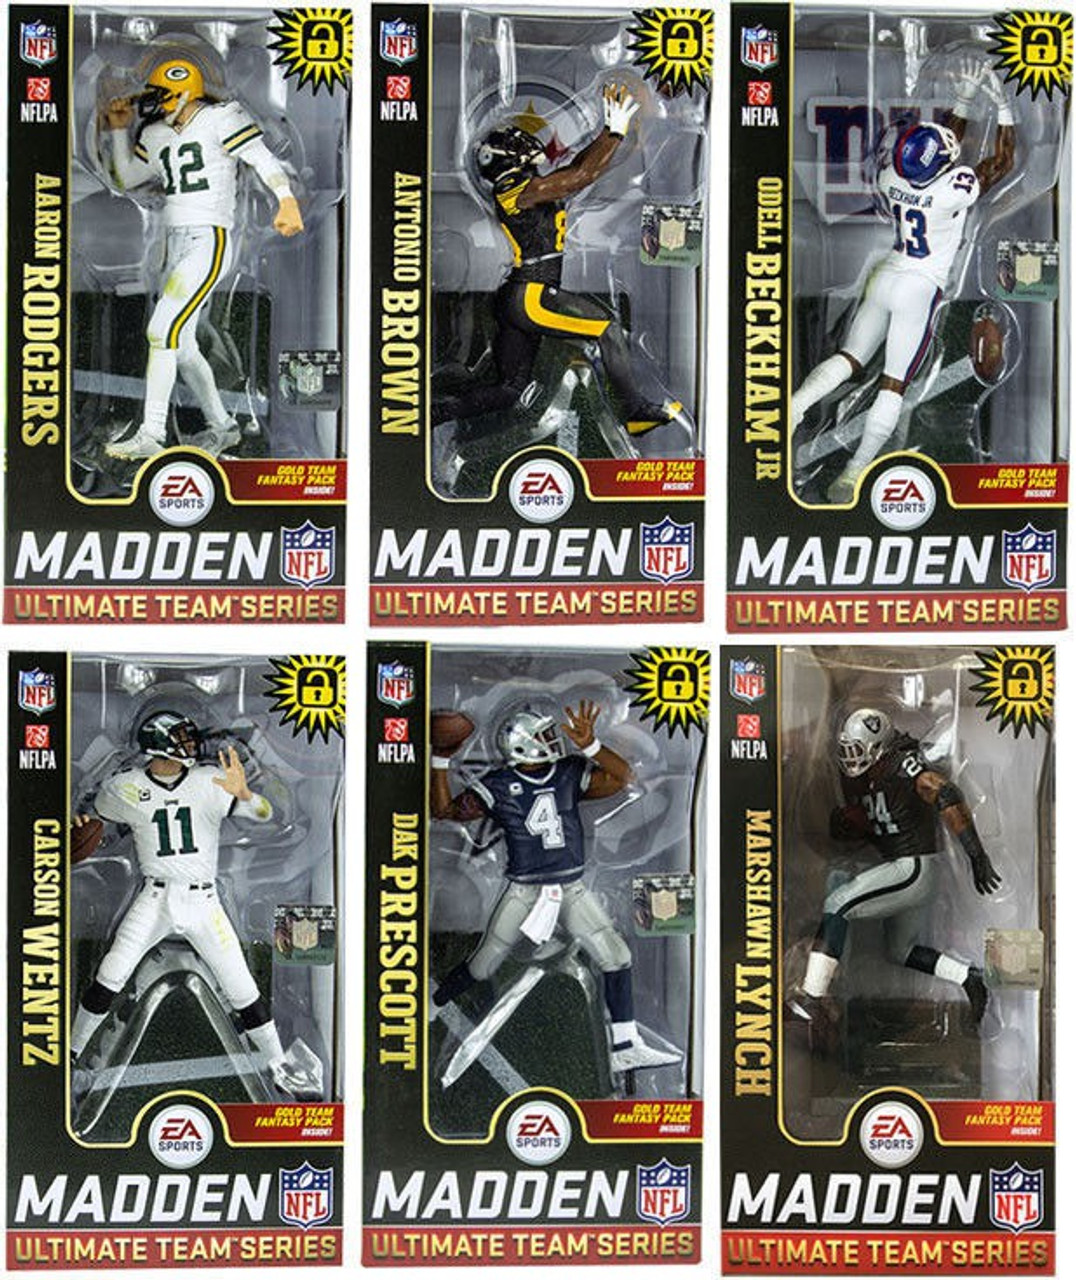 d4f0a338f41 McFarlane Toys NFL EA Sports Madden 19 Ultimate Team Series 1 Rodgers